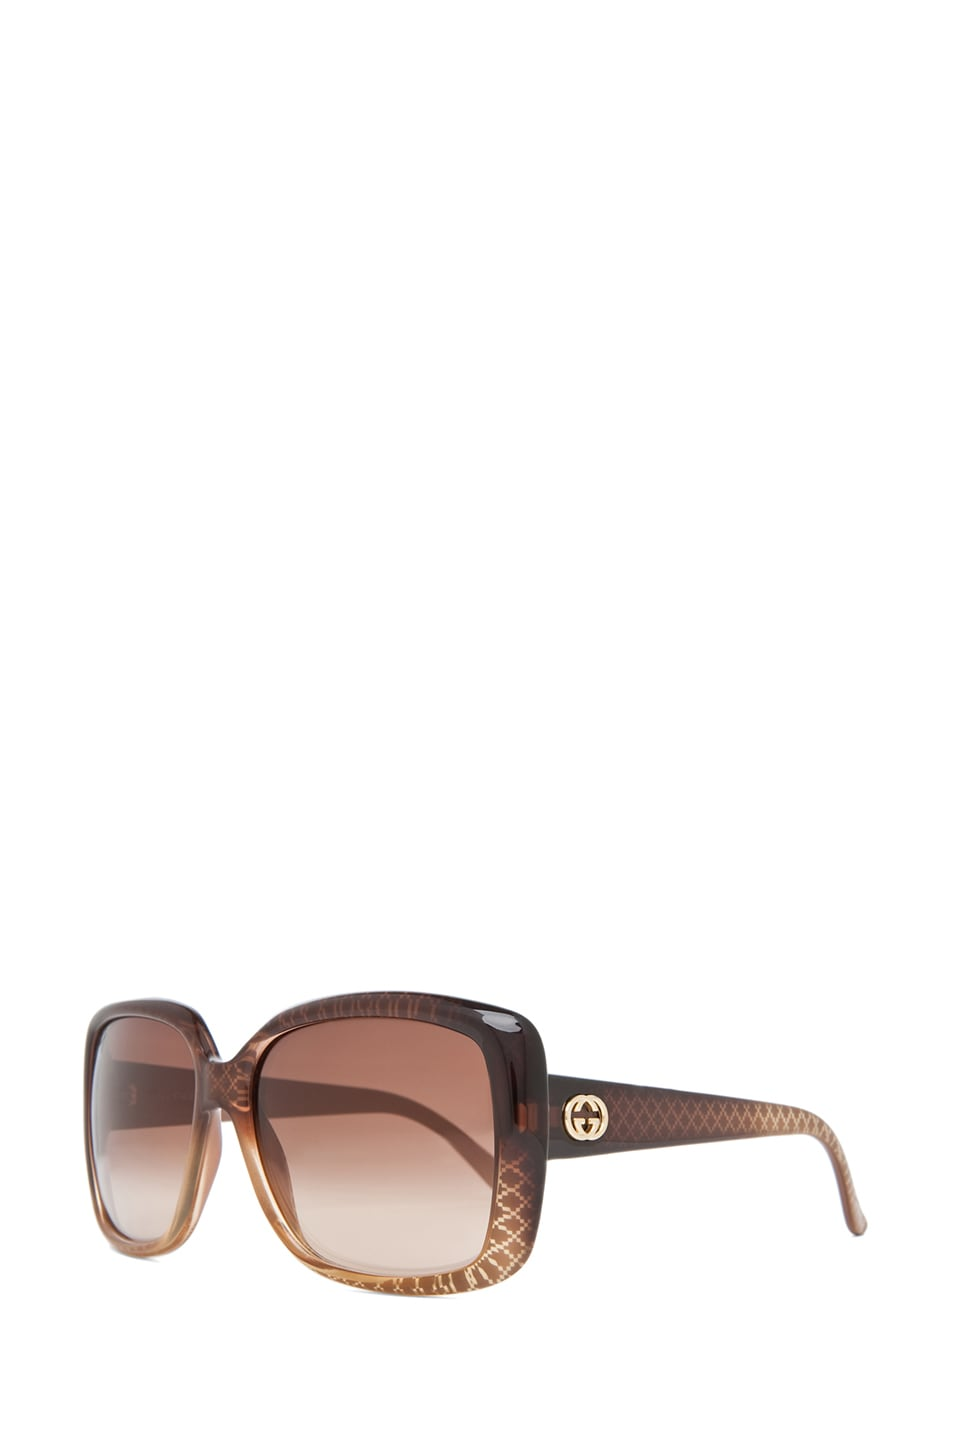 Image 2 of Gucci 3574 Sunglasses in Cuir Gold Diamond & Brown Gradient